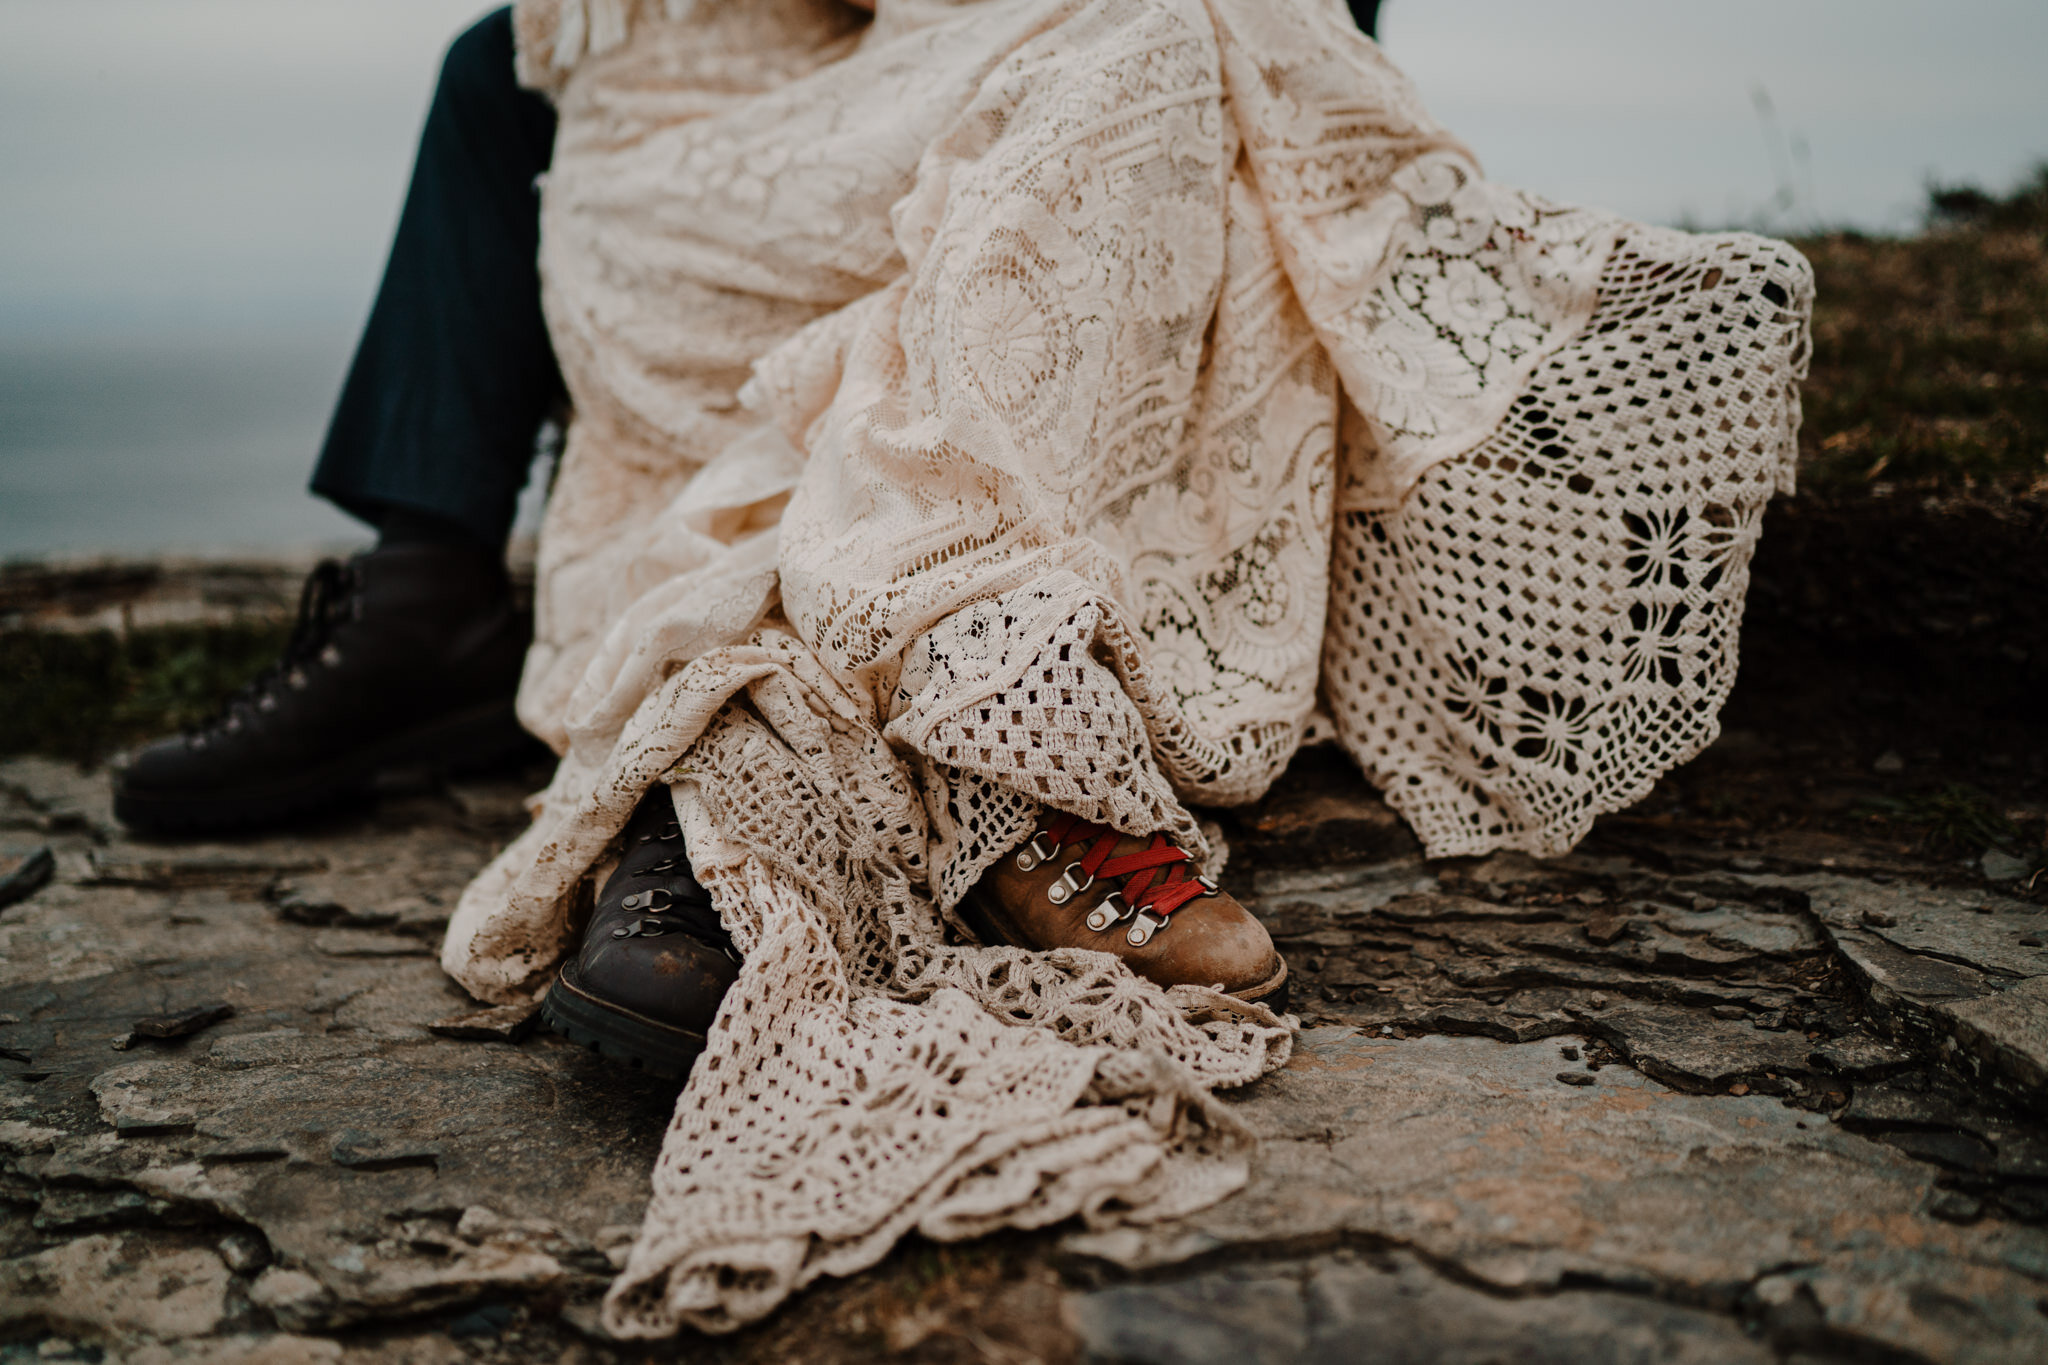 close up danner hiking boots and custom lace reclamation wedding dress Cliffs of Moher ireland